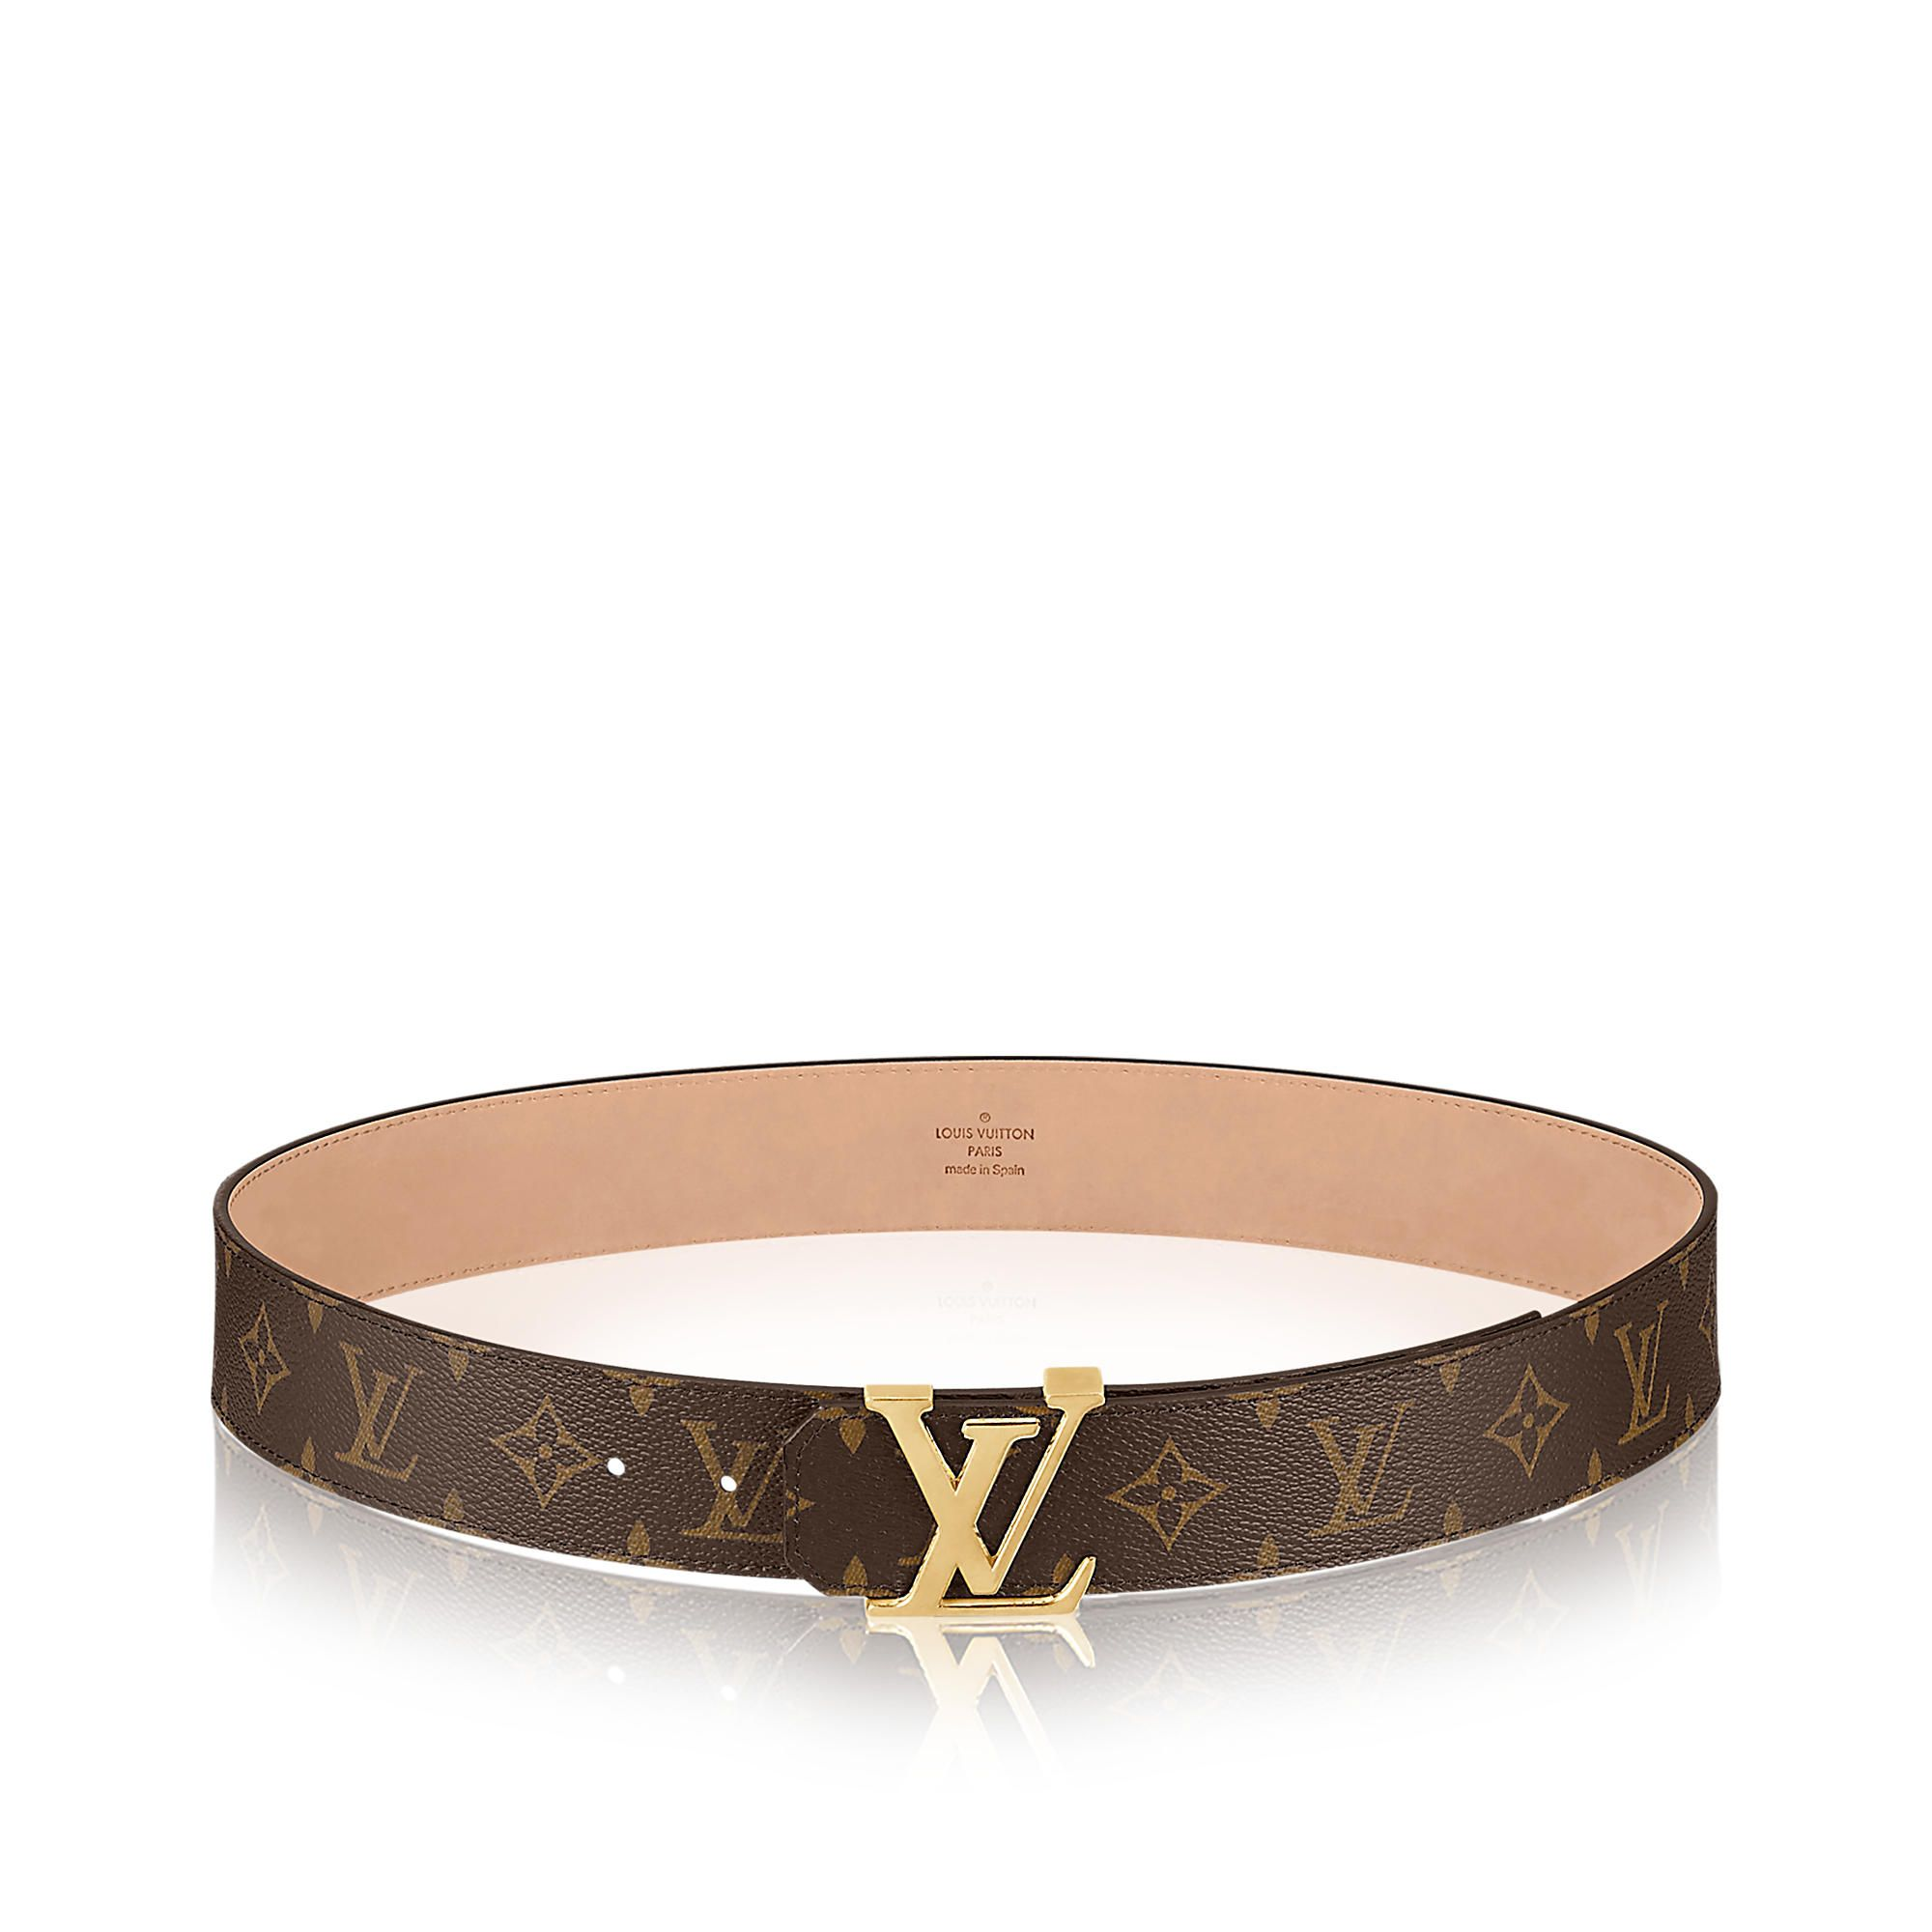 849c7e5d61 Louis Vuitton cintura LV Initials 40mm Tela Monogram | vestiti ...